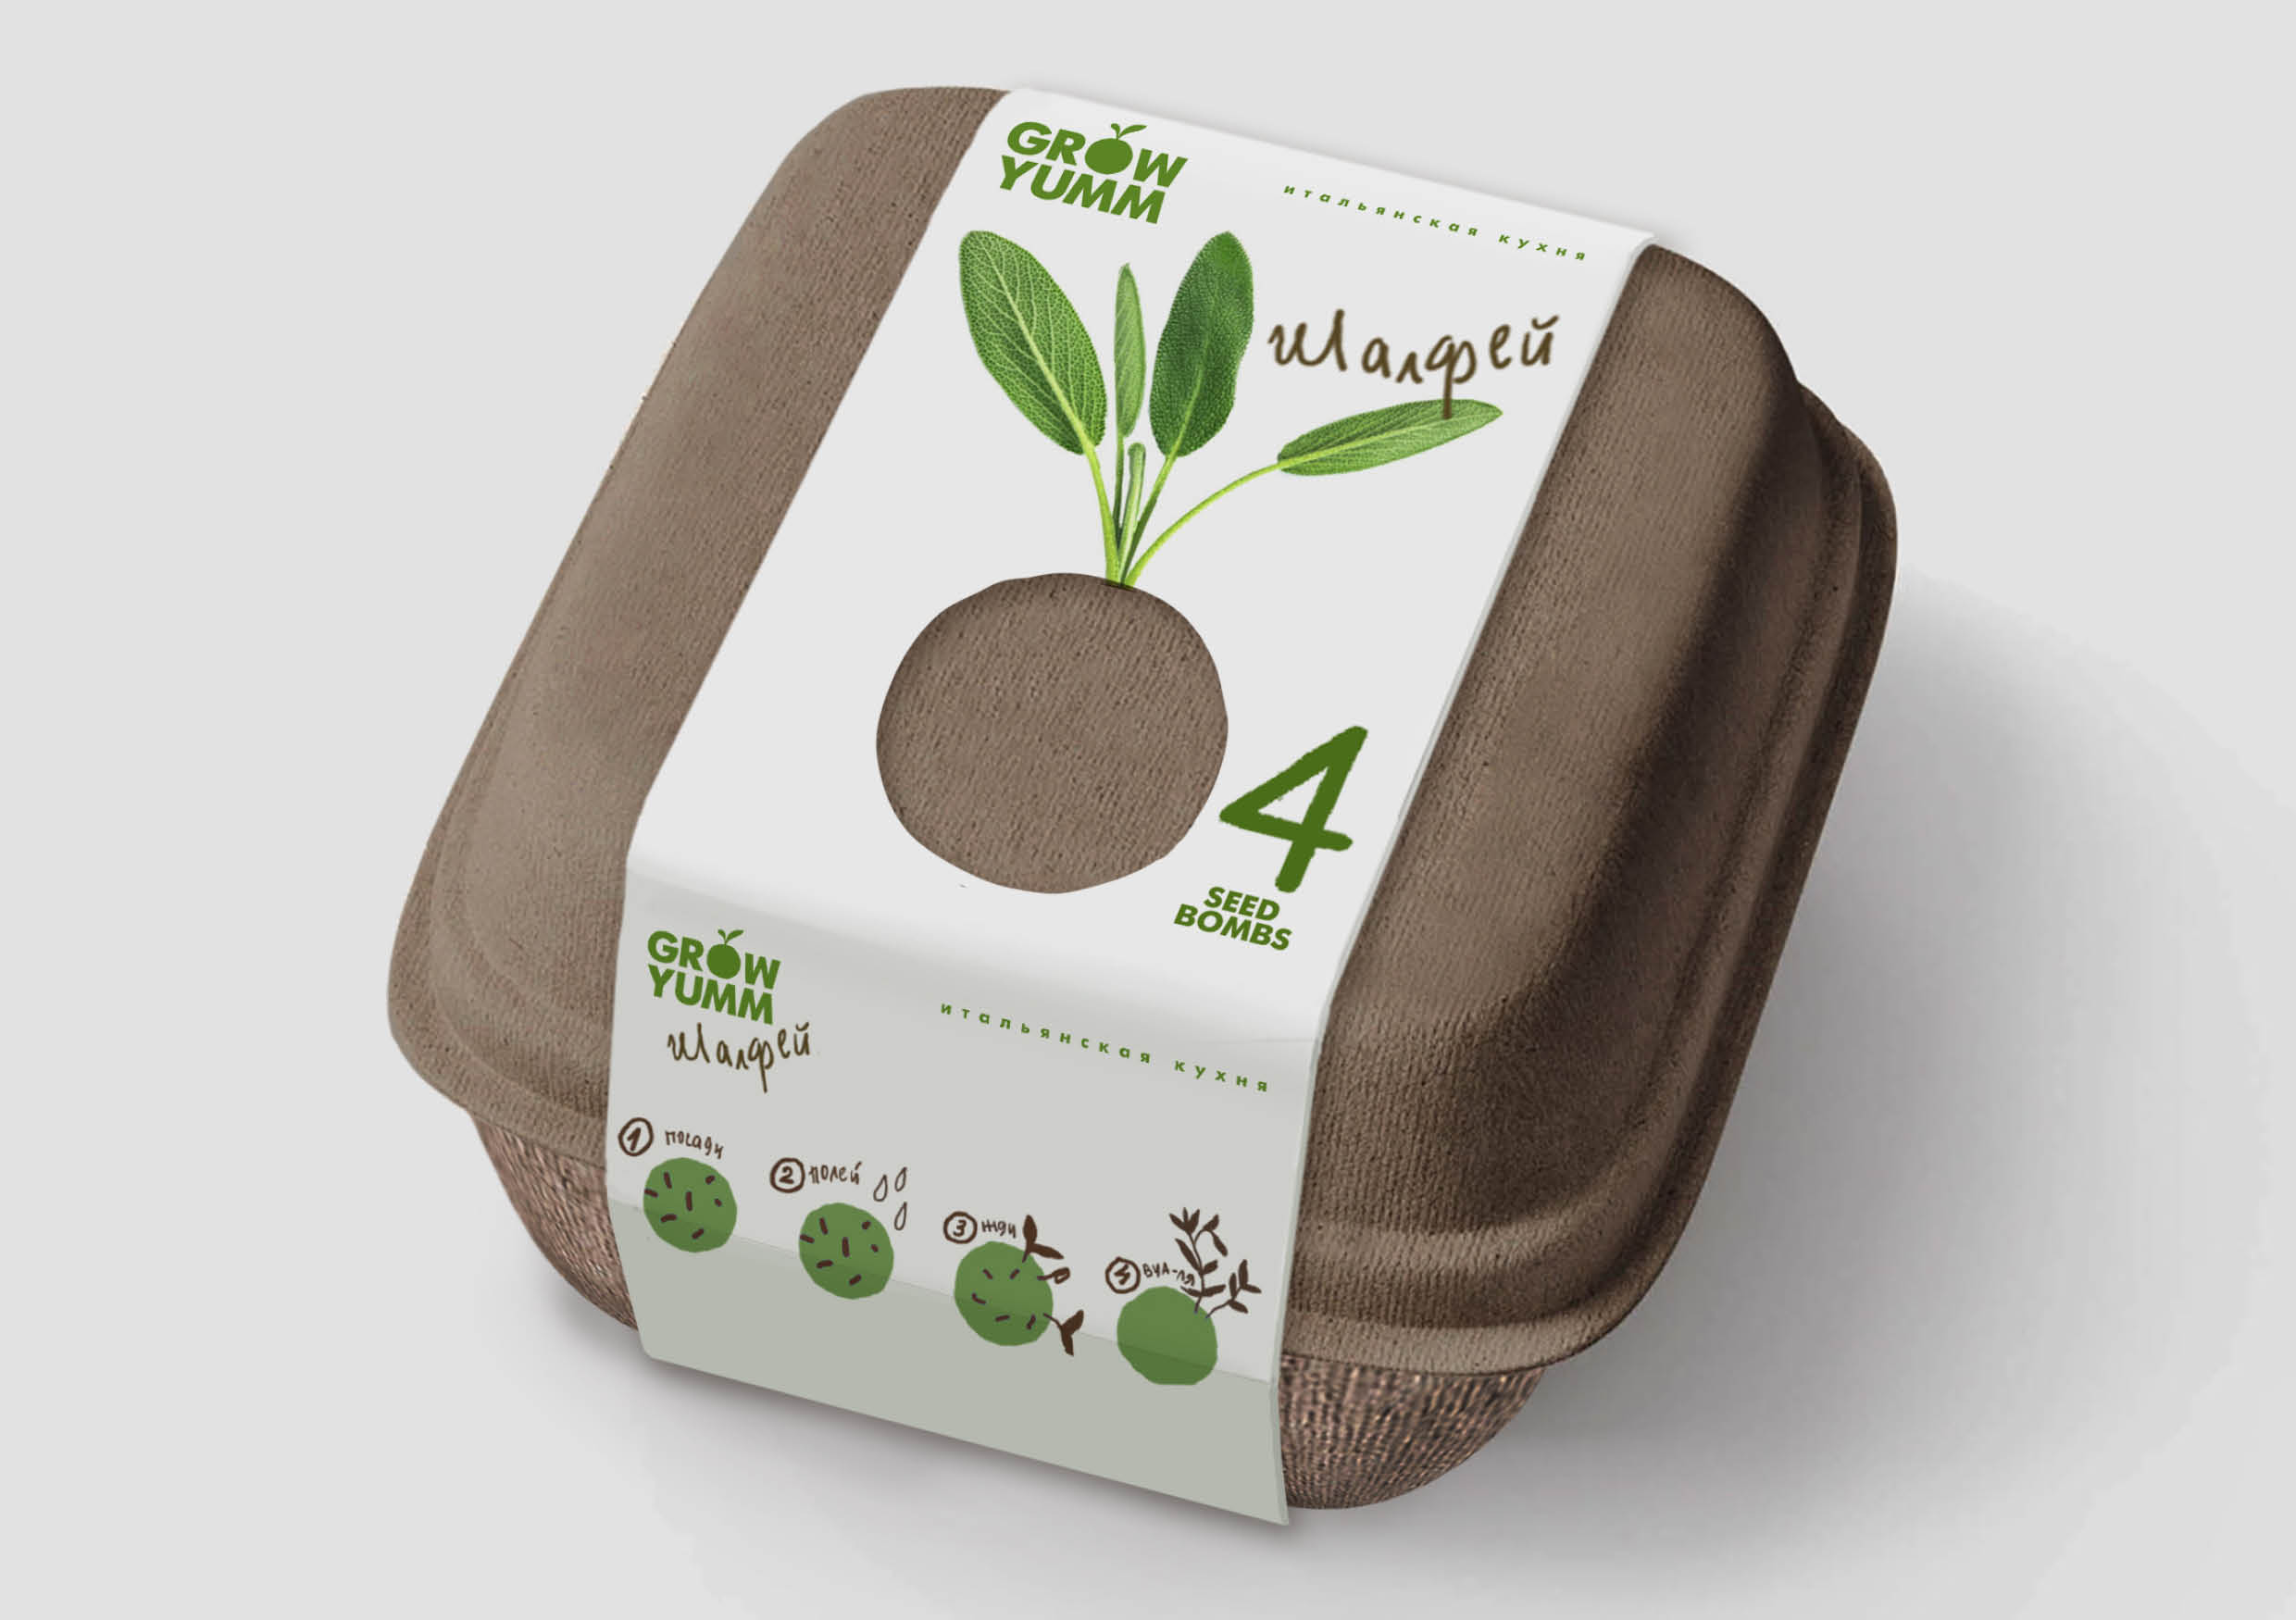 Grow Yumm Seeds Packaging Design by Kopilevich Angelina